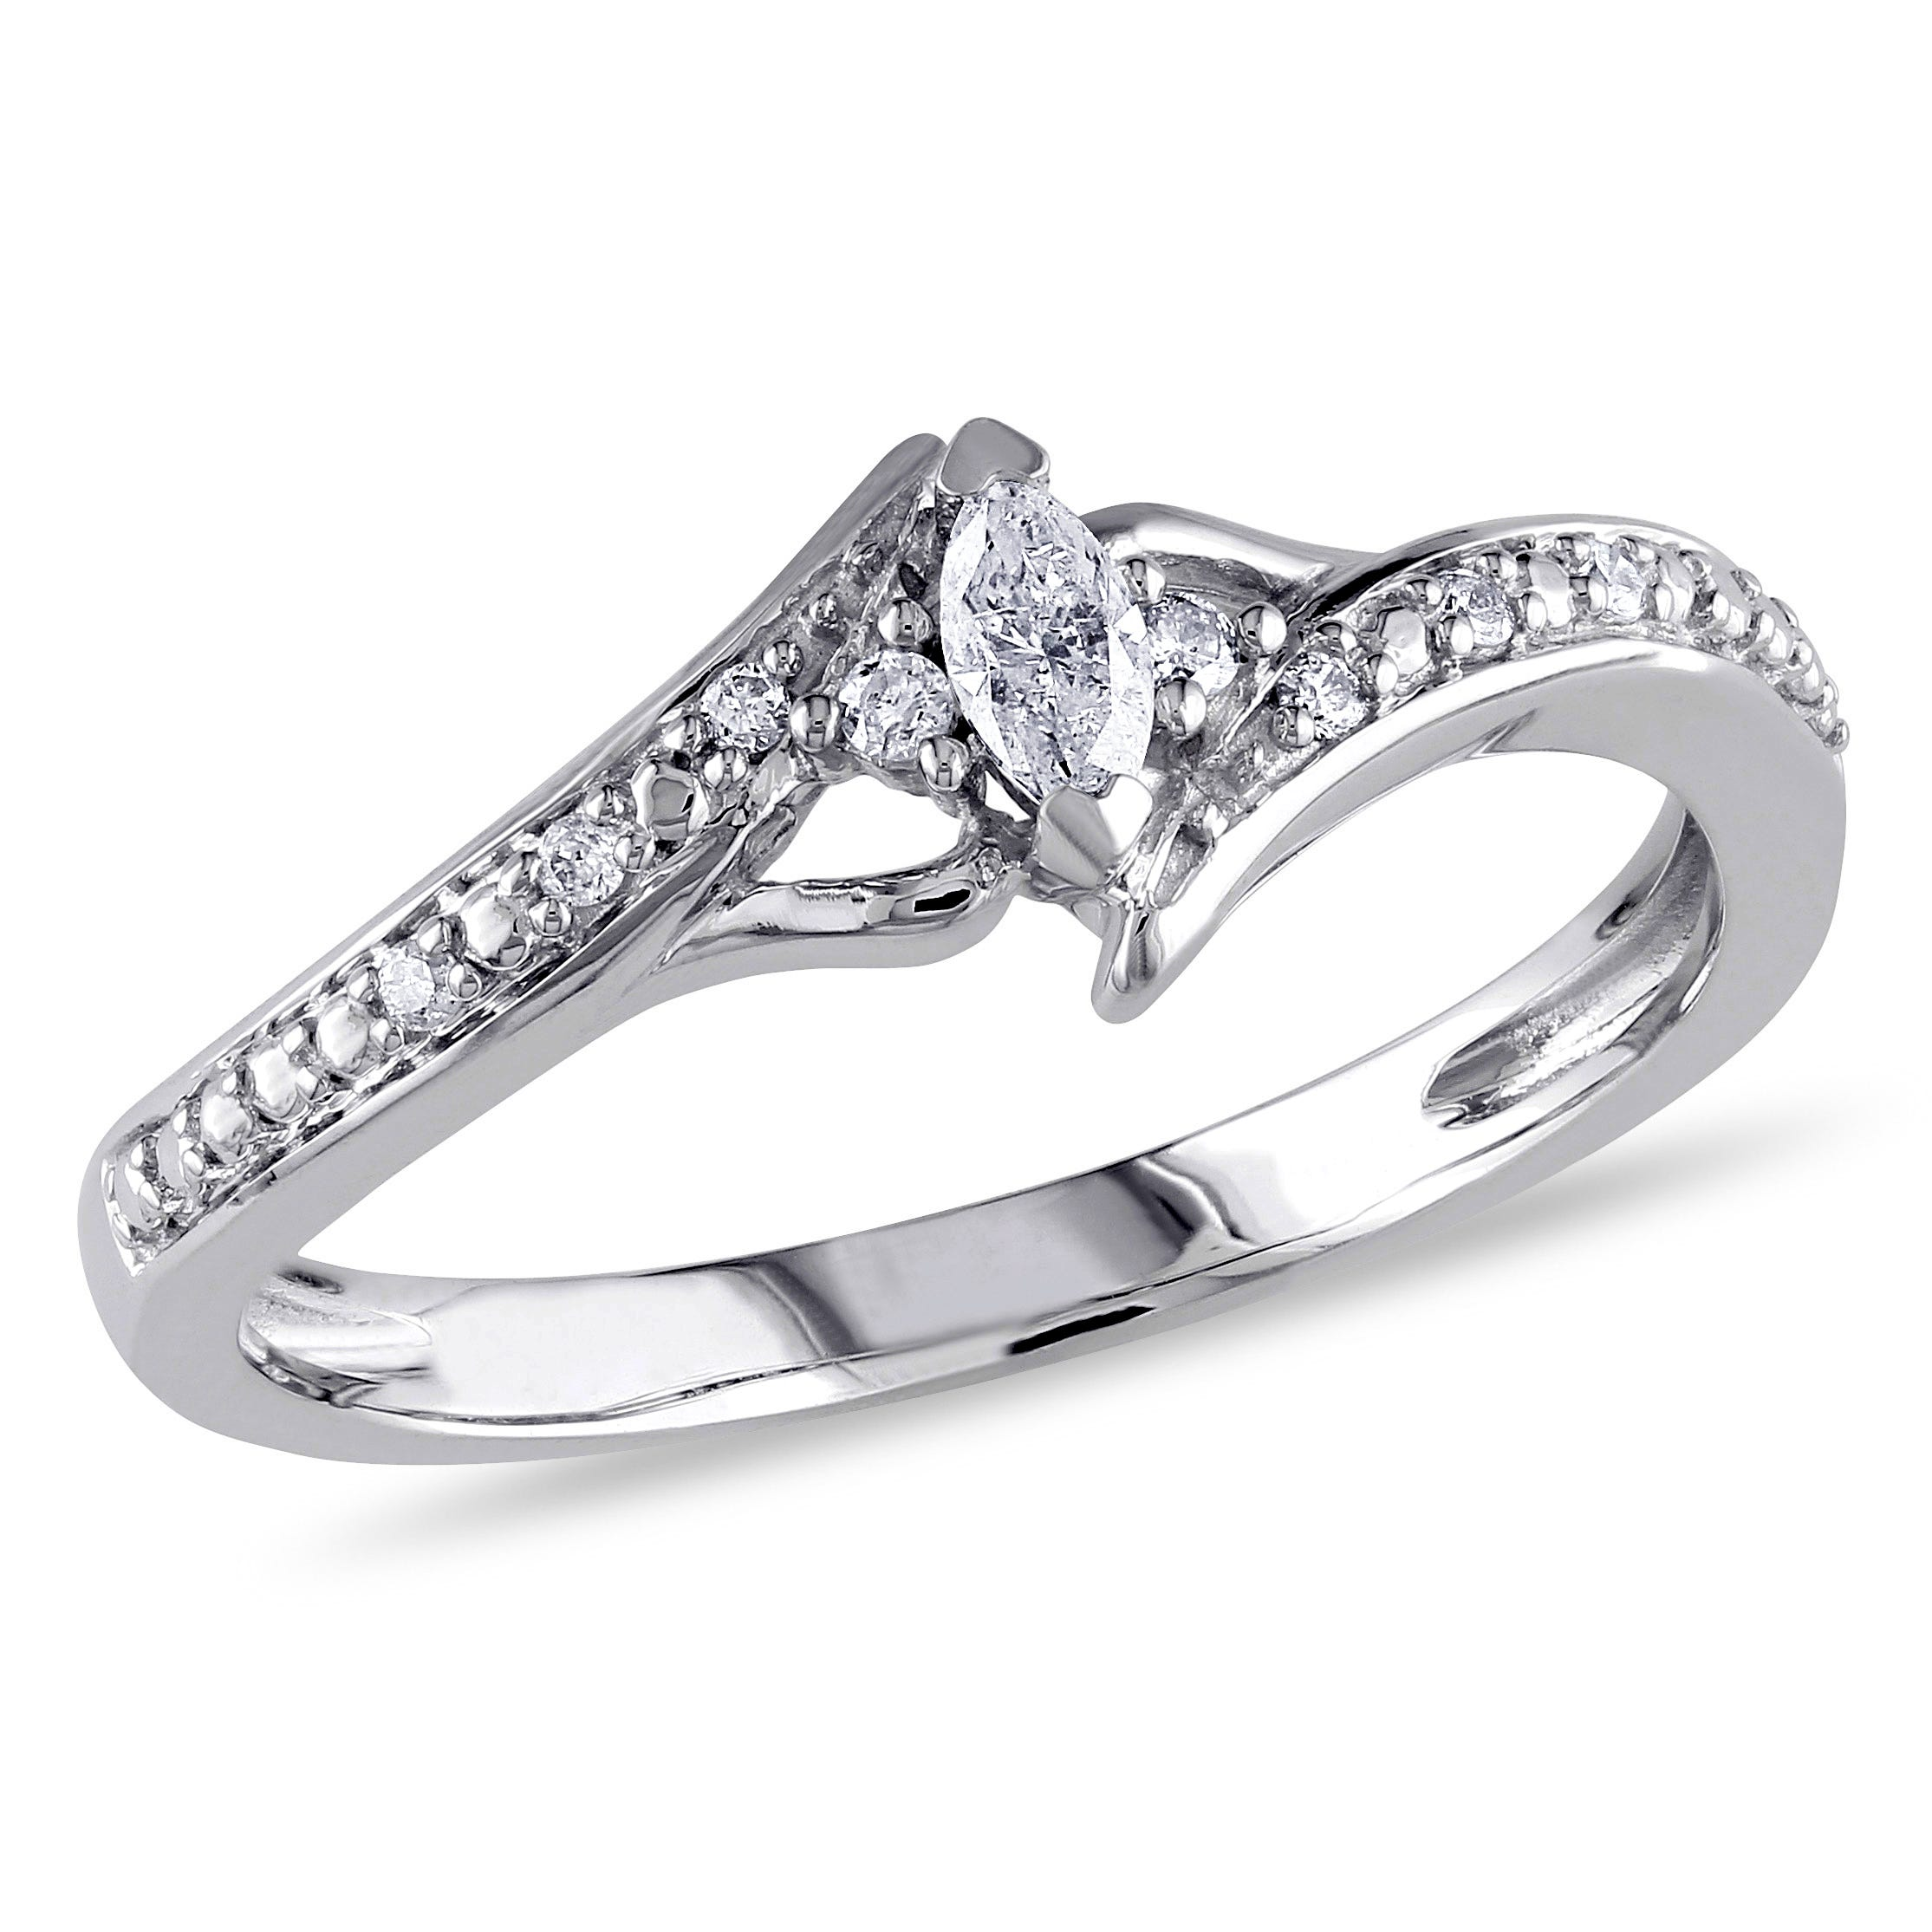 Marquise & Round Cut Diamond Promise Ring 1/6ctw. in 10k White Gold